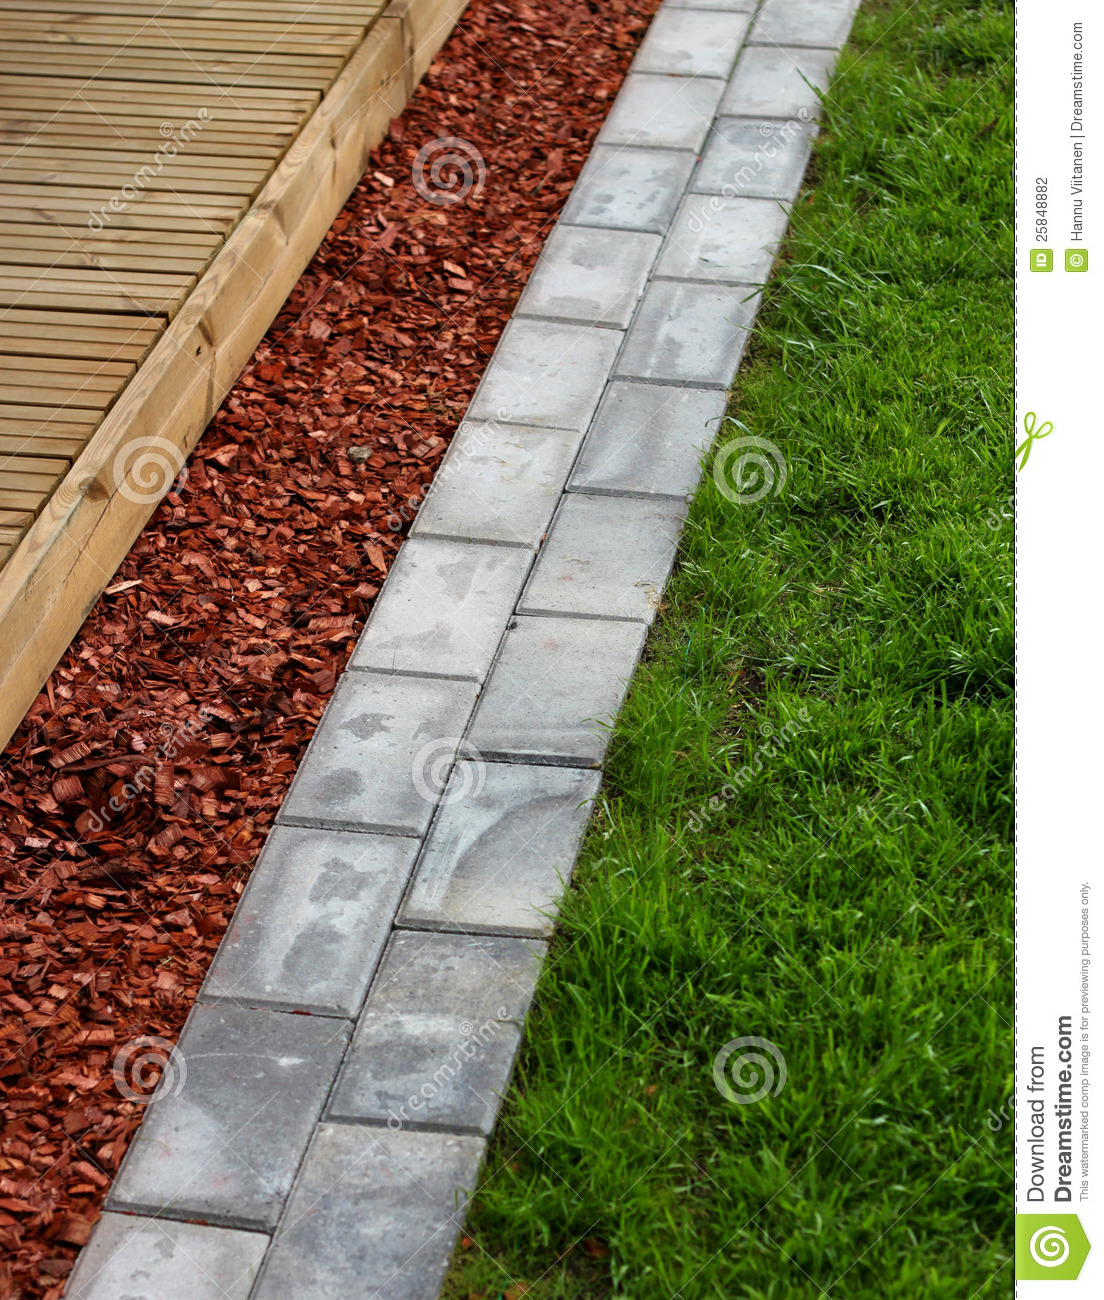 Modern Home Garden Materials Stock Photography Image 25848882